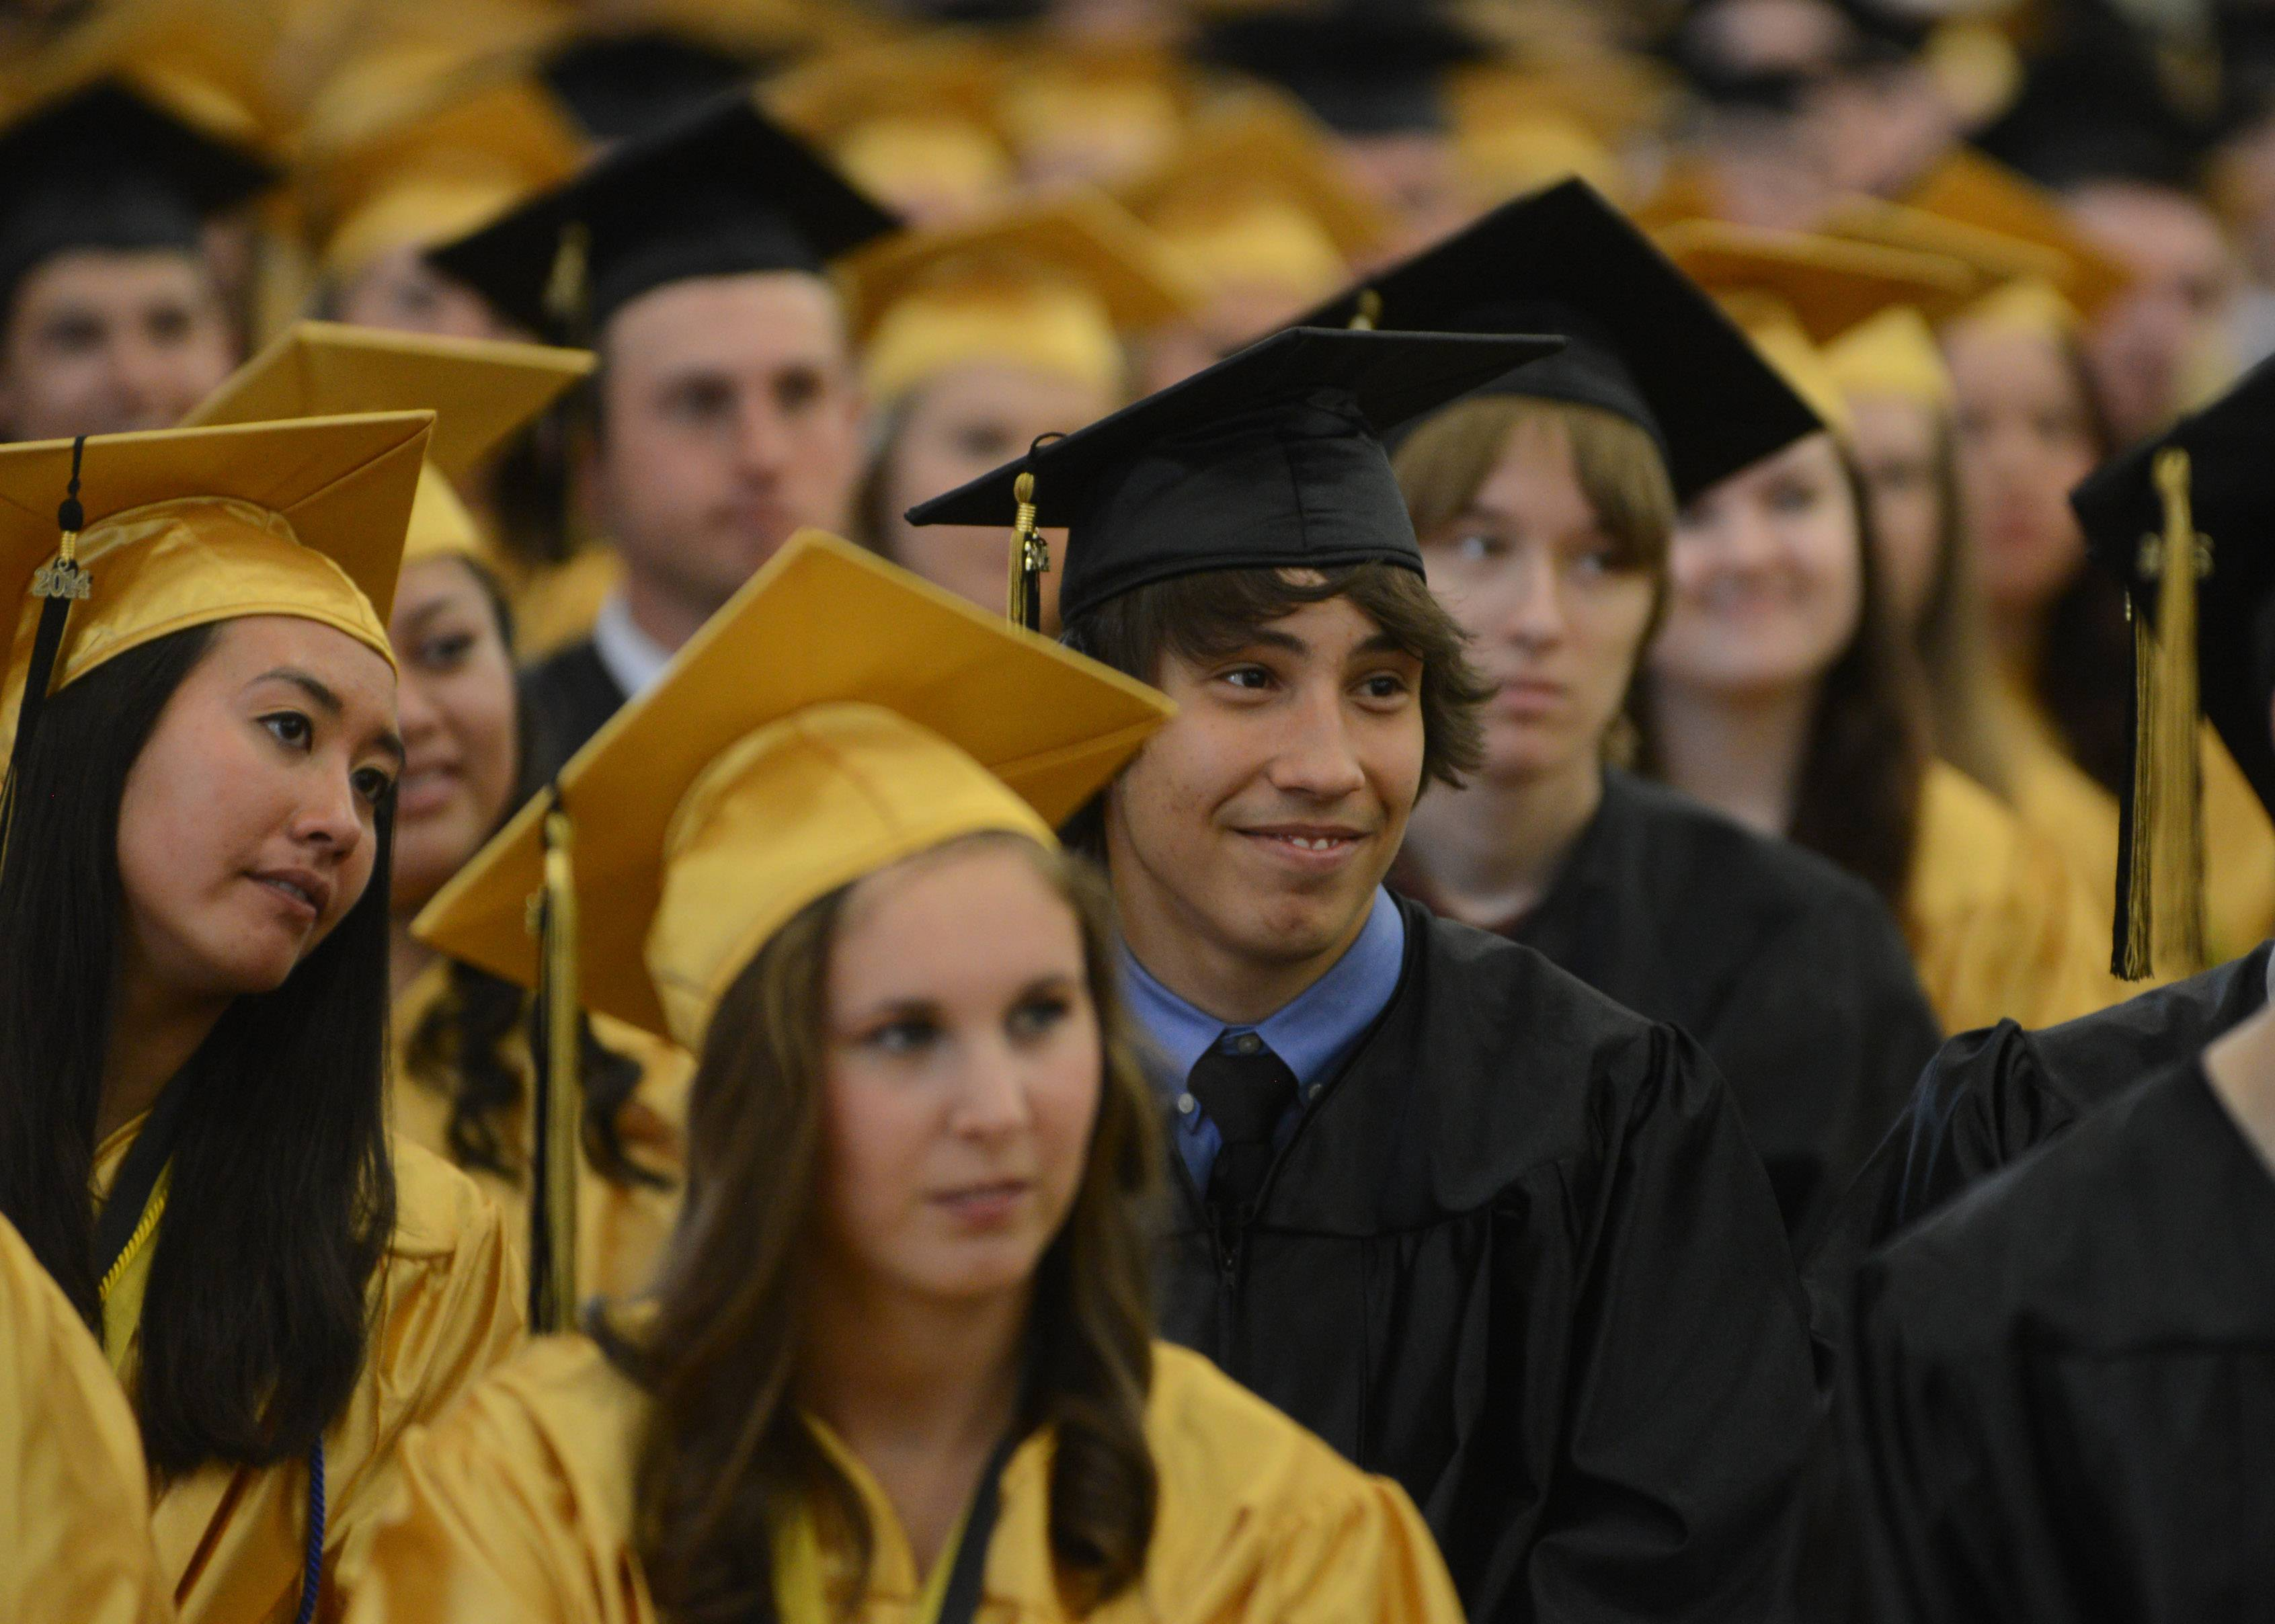 Images from the Grayslake North High School graduation on Sunday, May 18 in Grayslake.